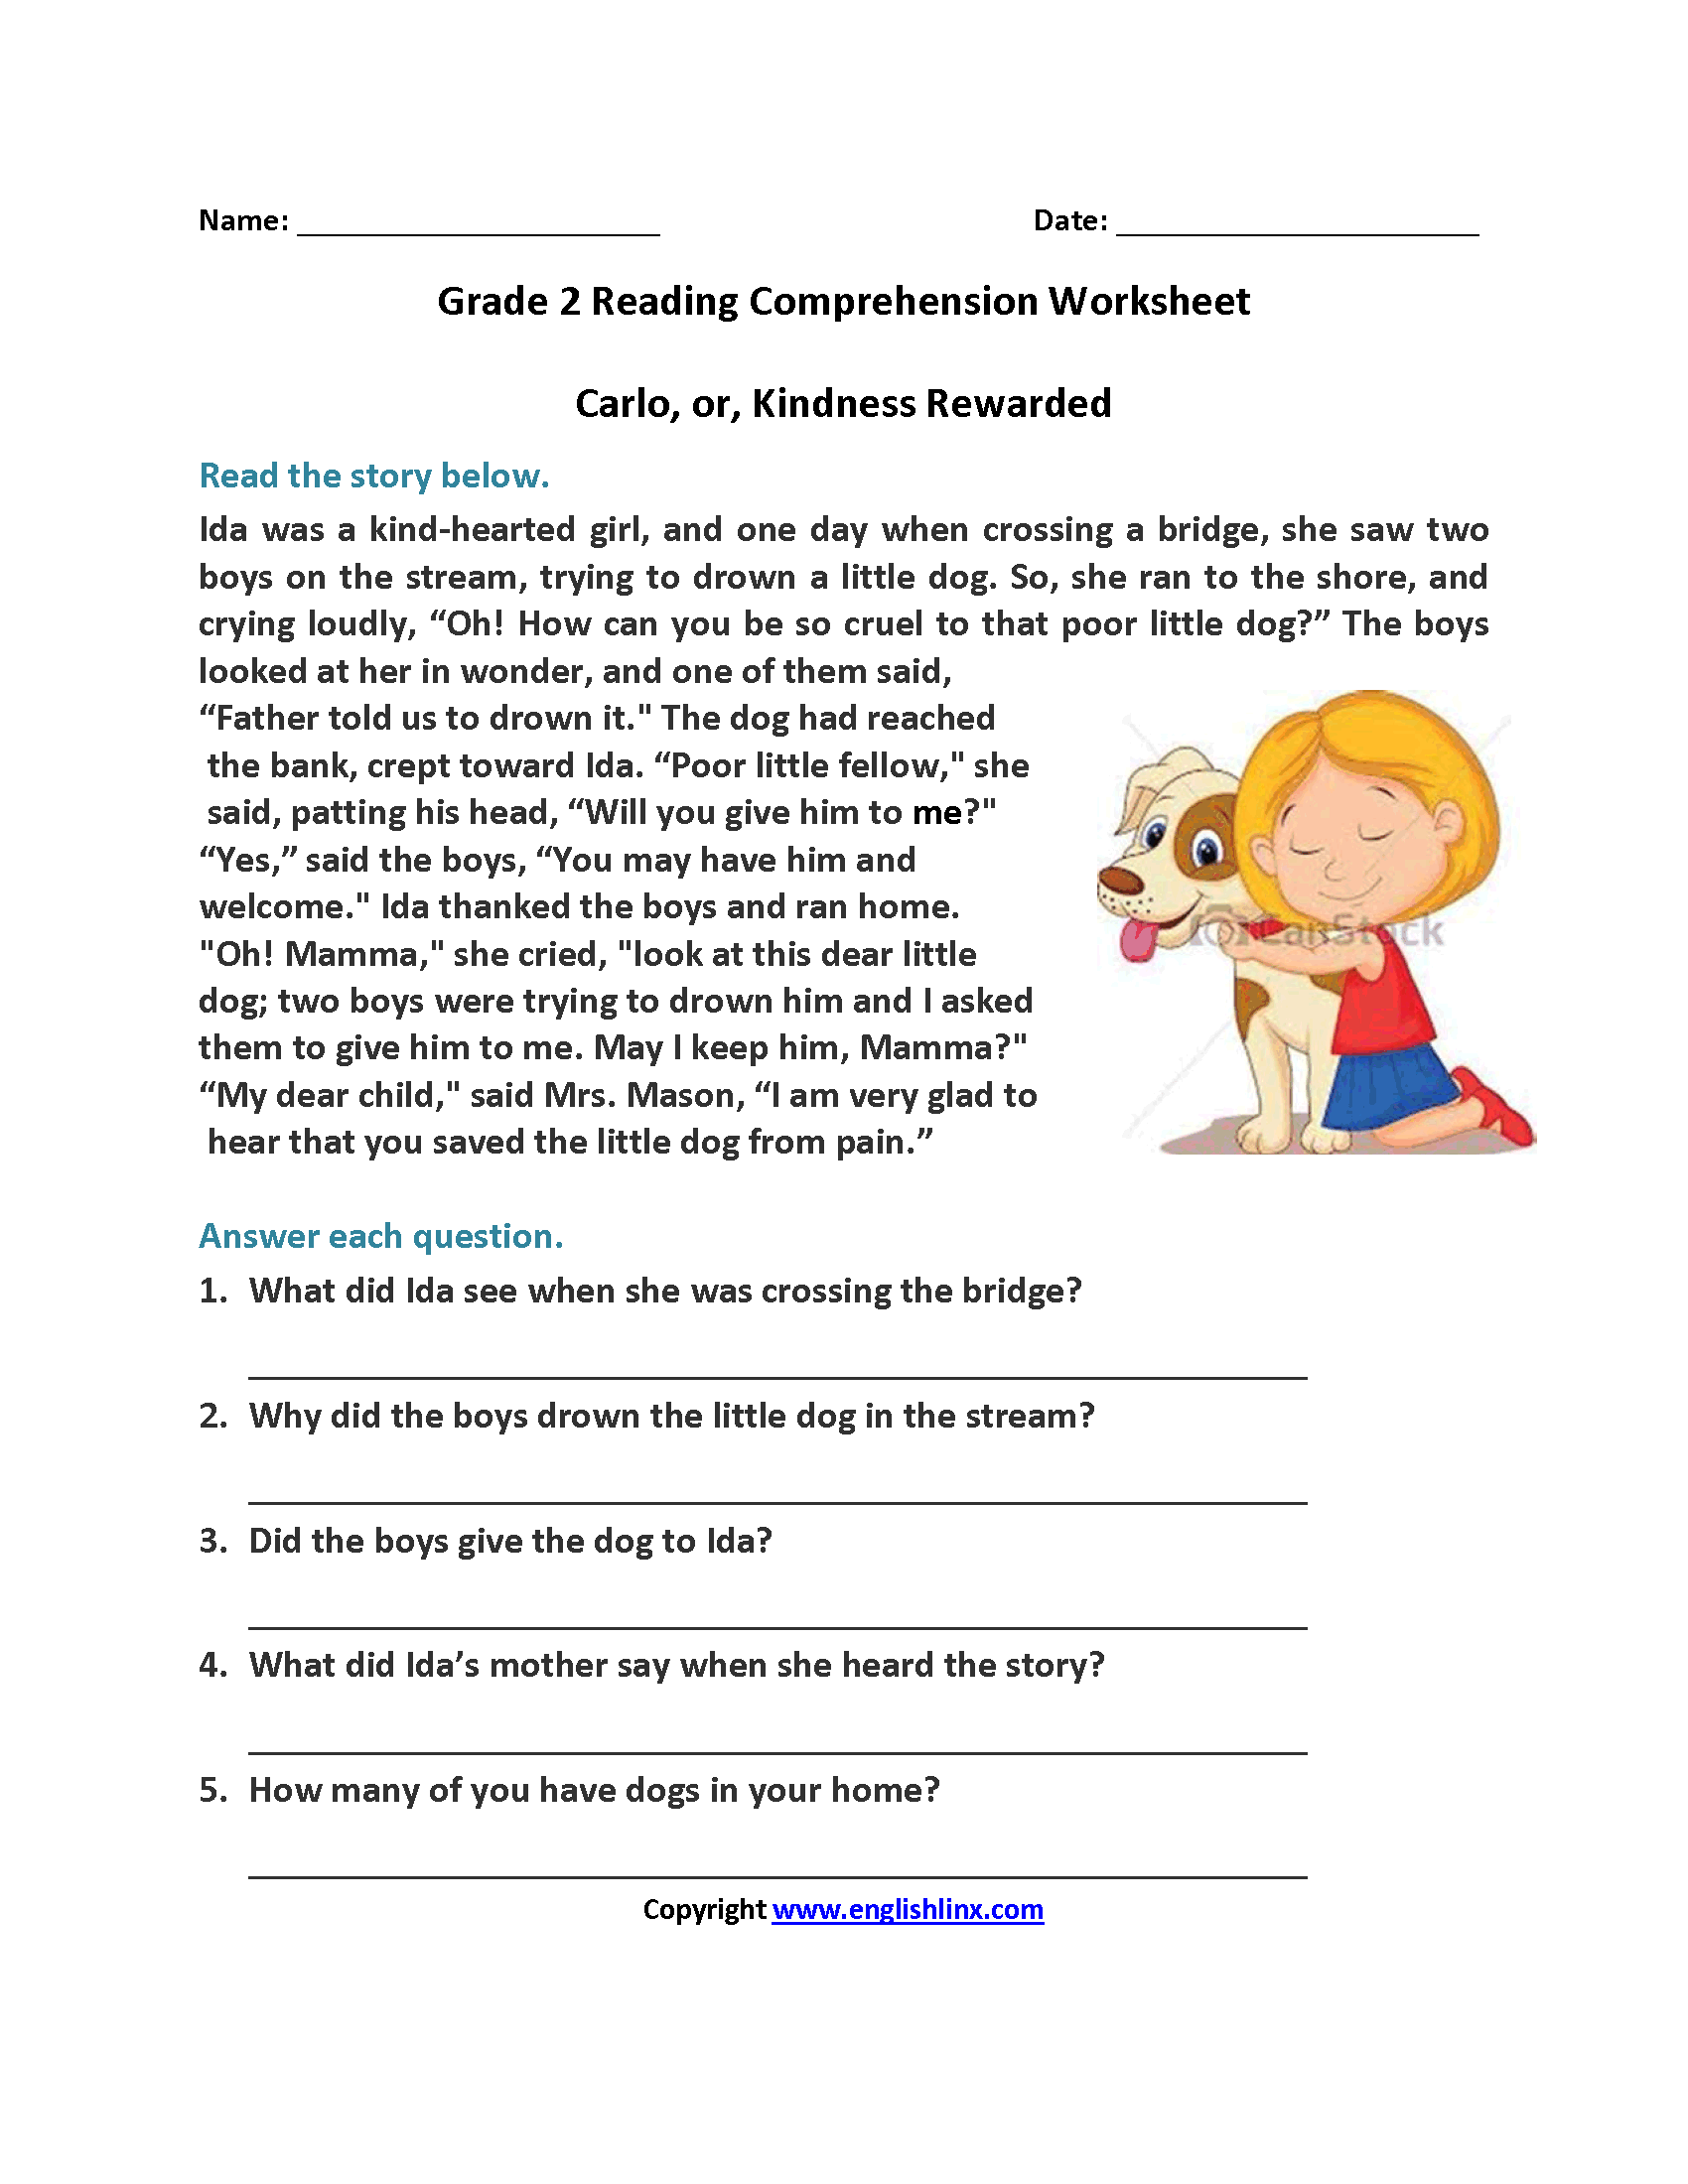 Free reading comprehension worksheets pdf